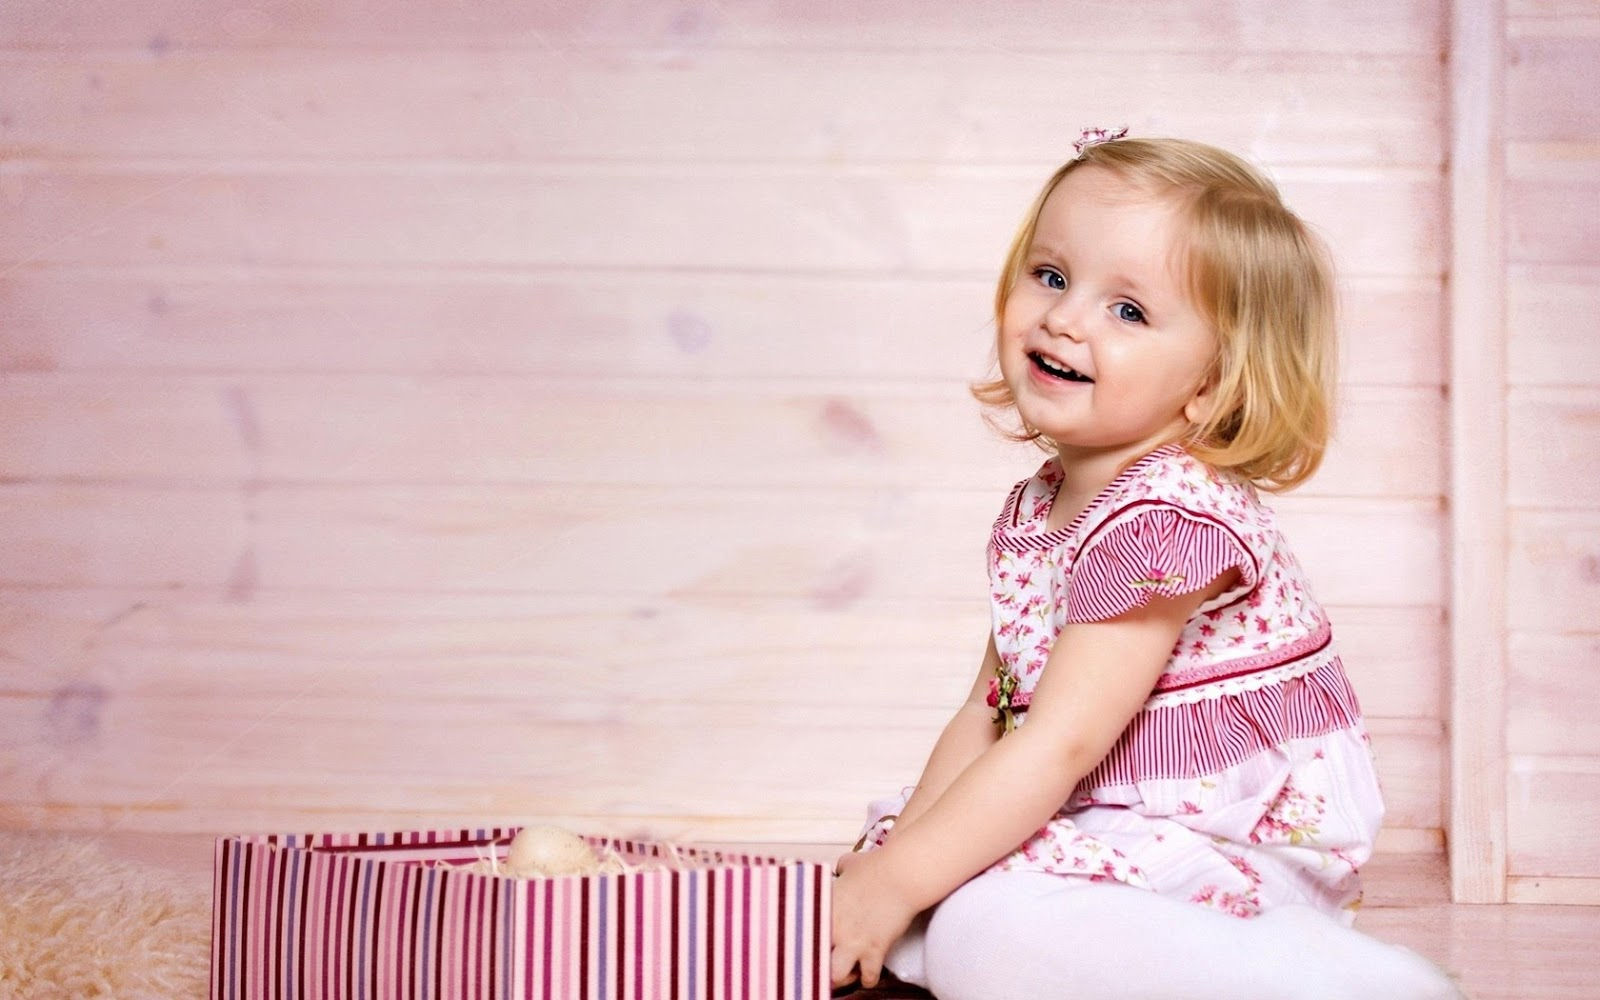 Cute Little Baby Girl And Gift Box Hd Wallpaper Cute